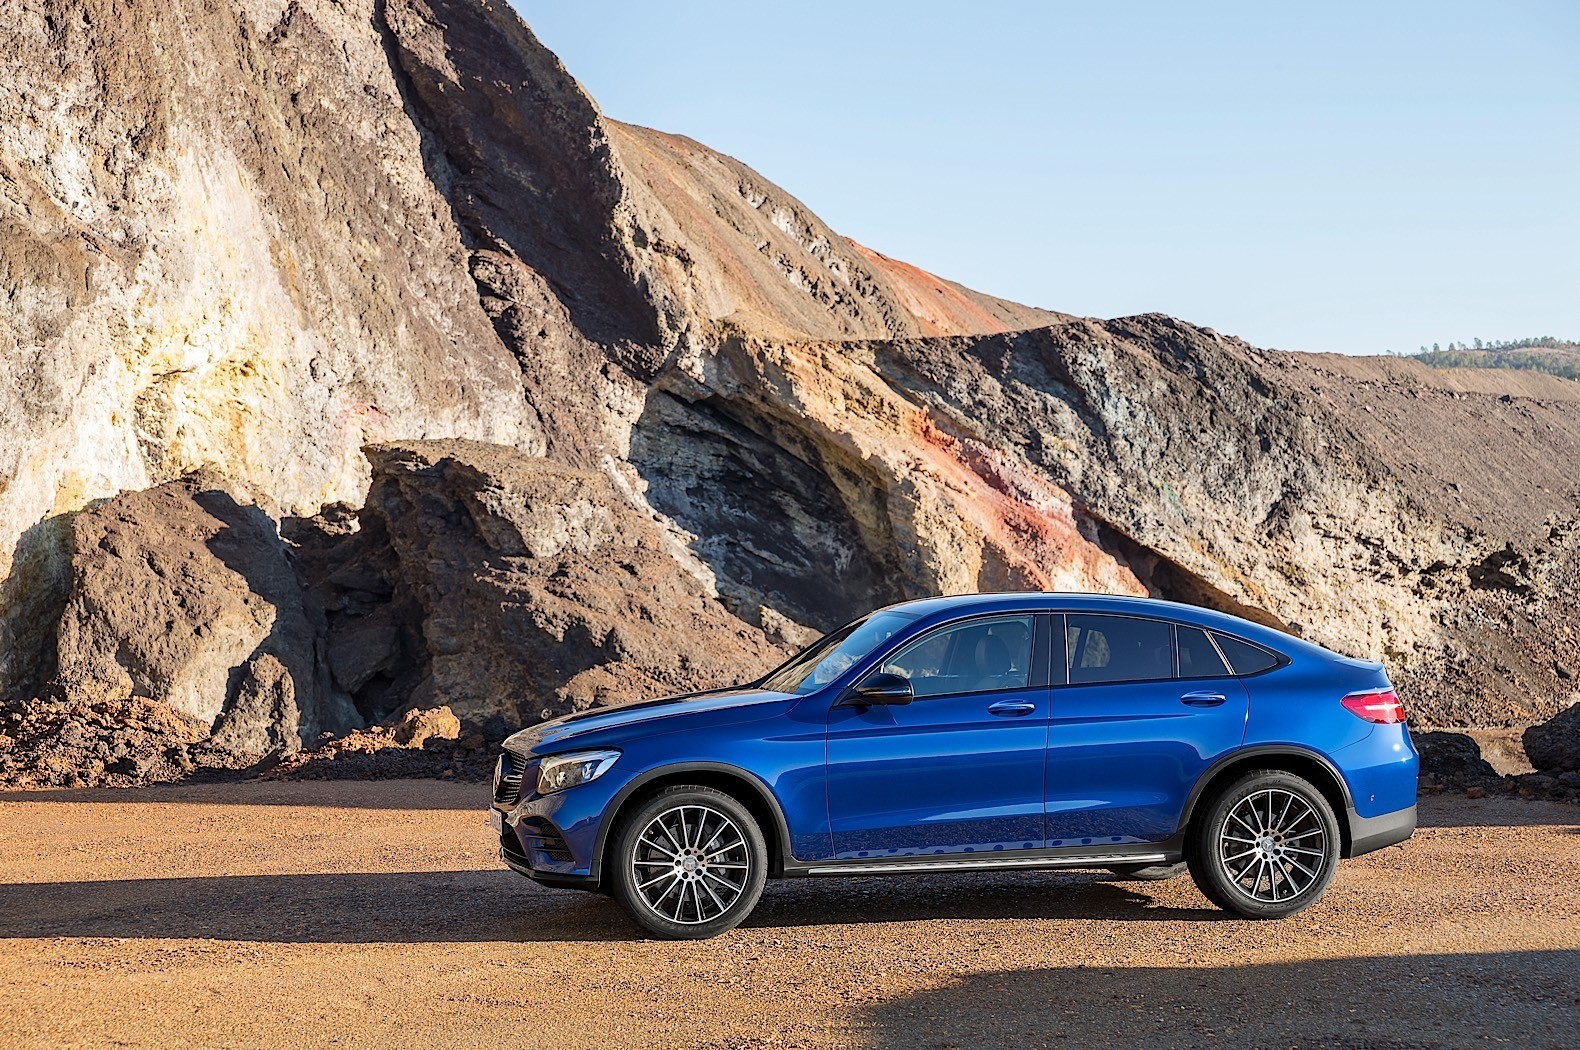 2017 mercedes benz glc coupe is out for bmw x4 blood in new york autoevolution. Black Bedroom Furniture Sets. Home Design Ideas